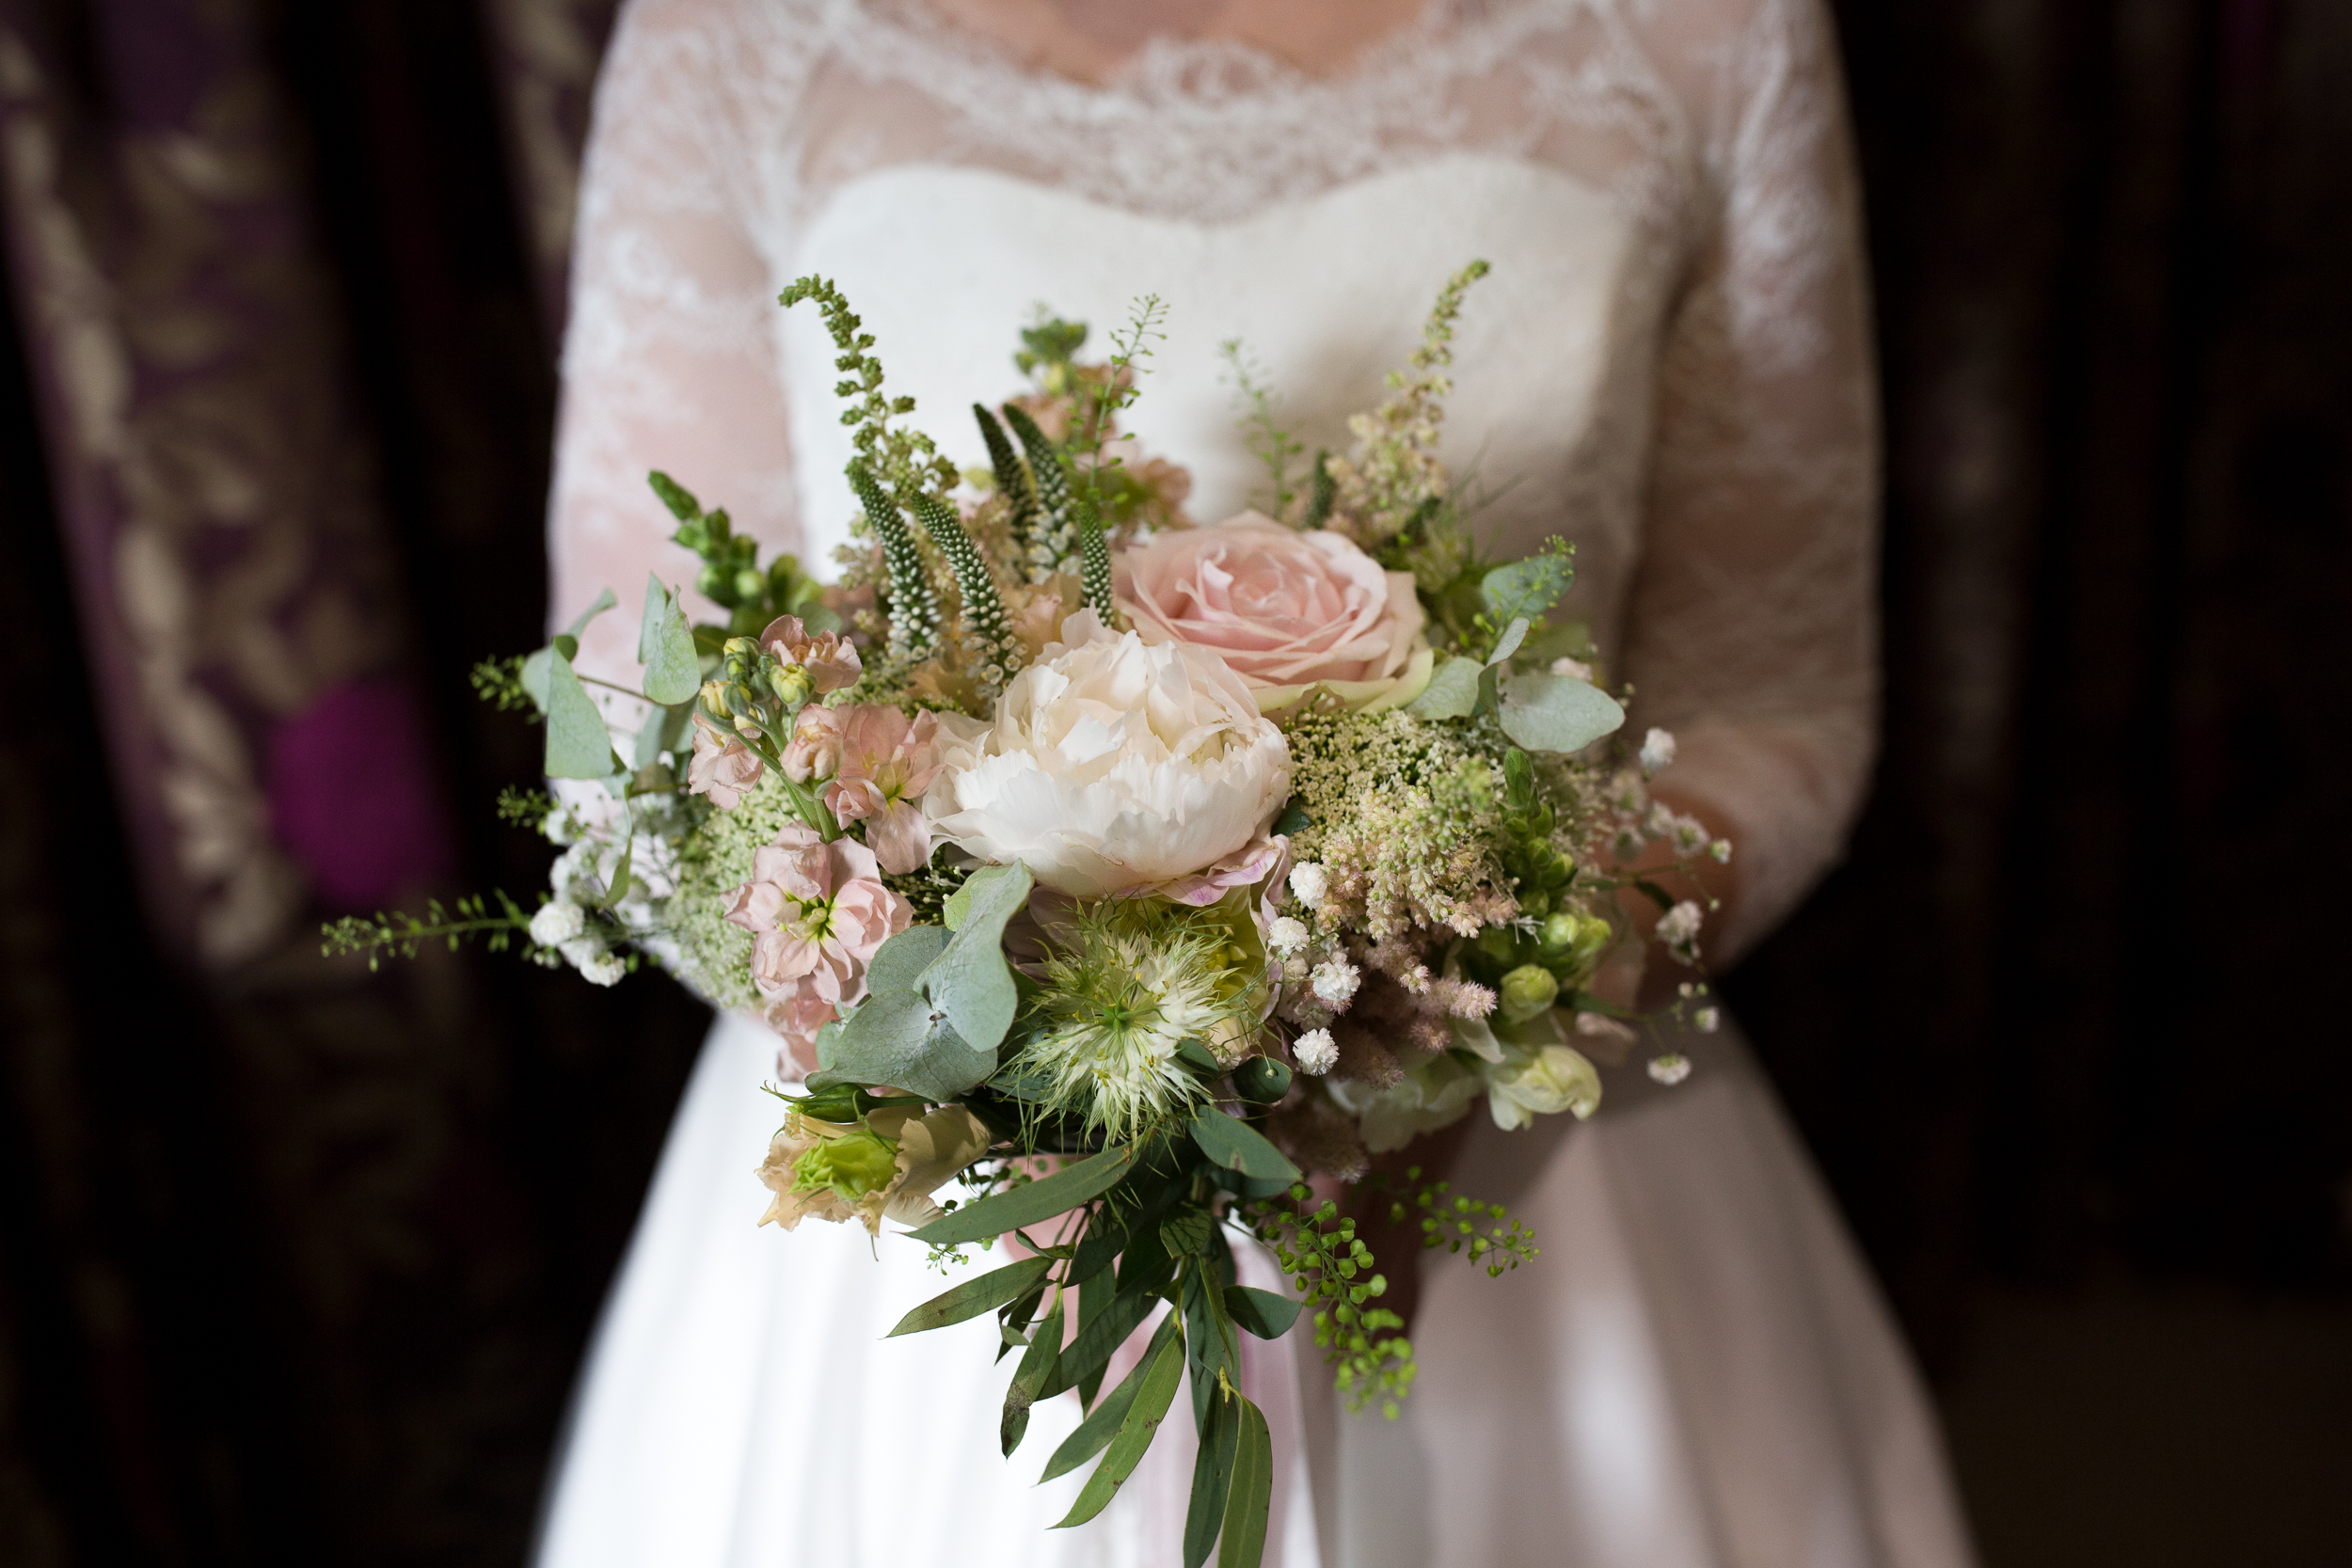 Aberdeen wedding florist, Aberdeenshire wedding florist, trinas arts and flowers, wedding flowers Inverurie, weddings Inverurie, pittodrie house hotel